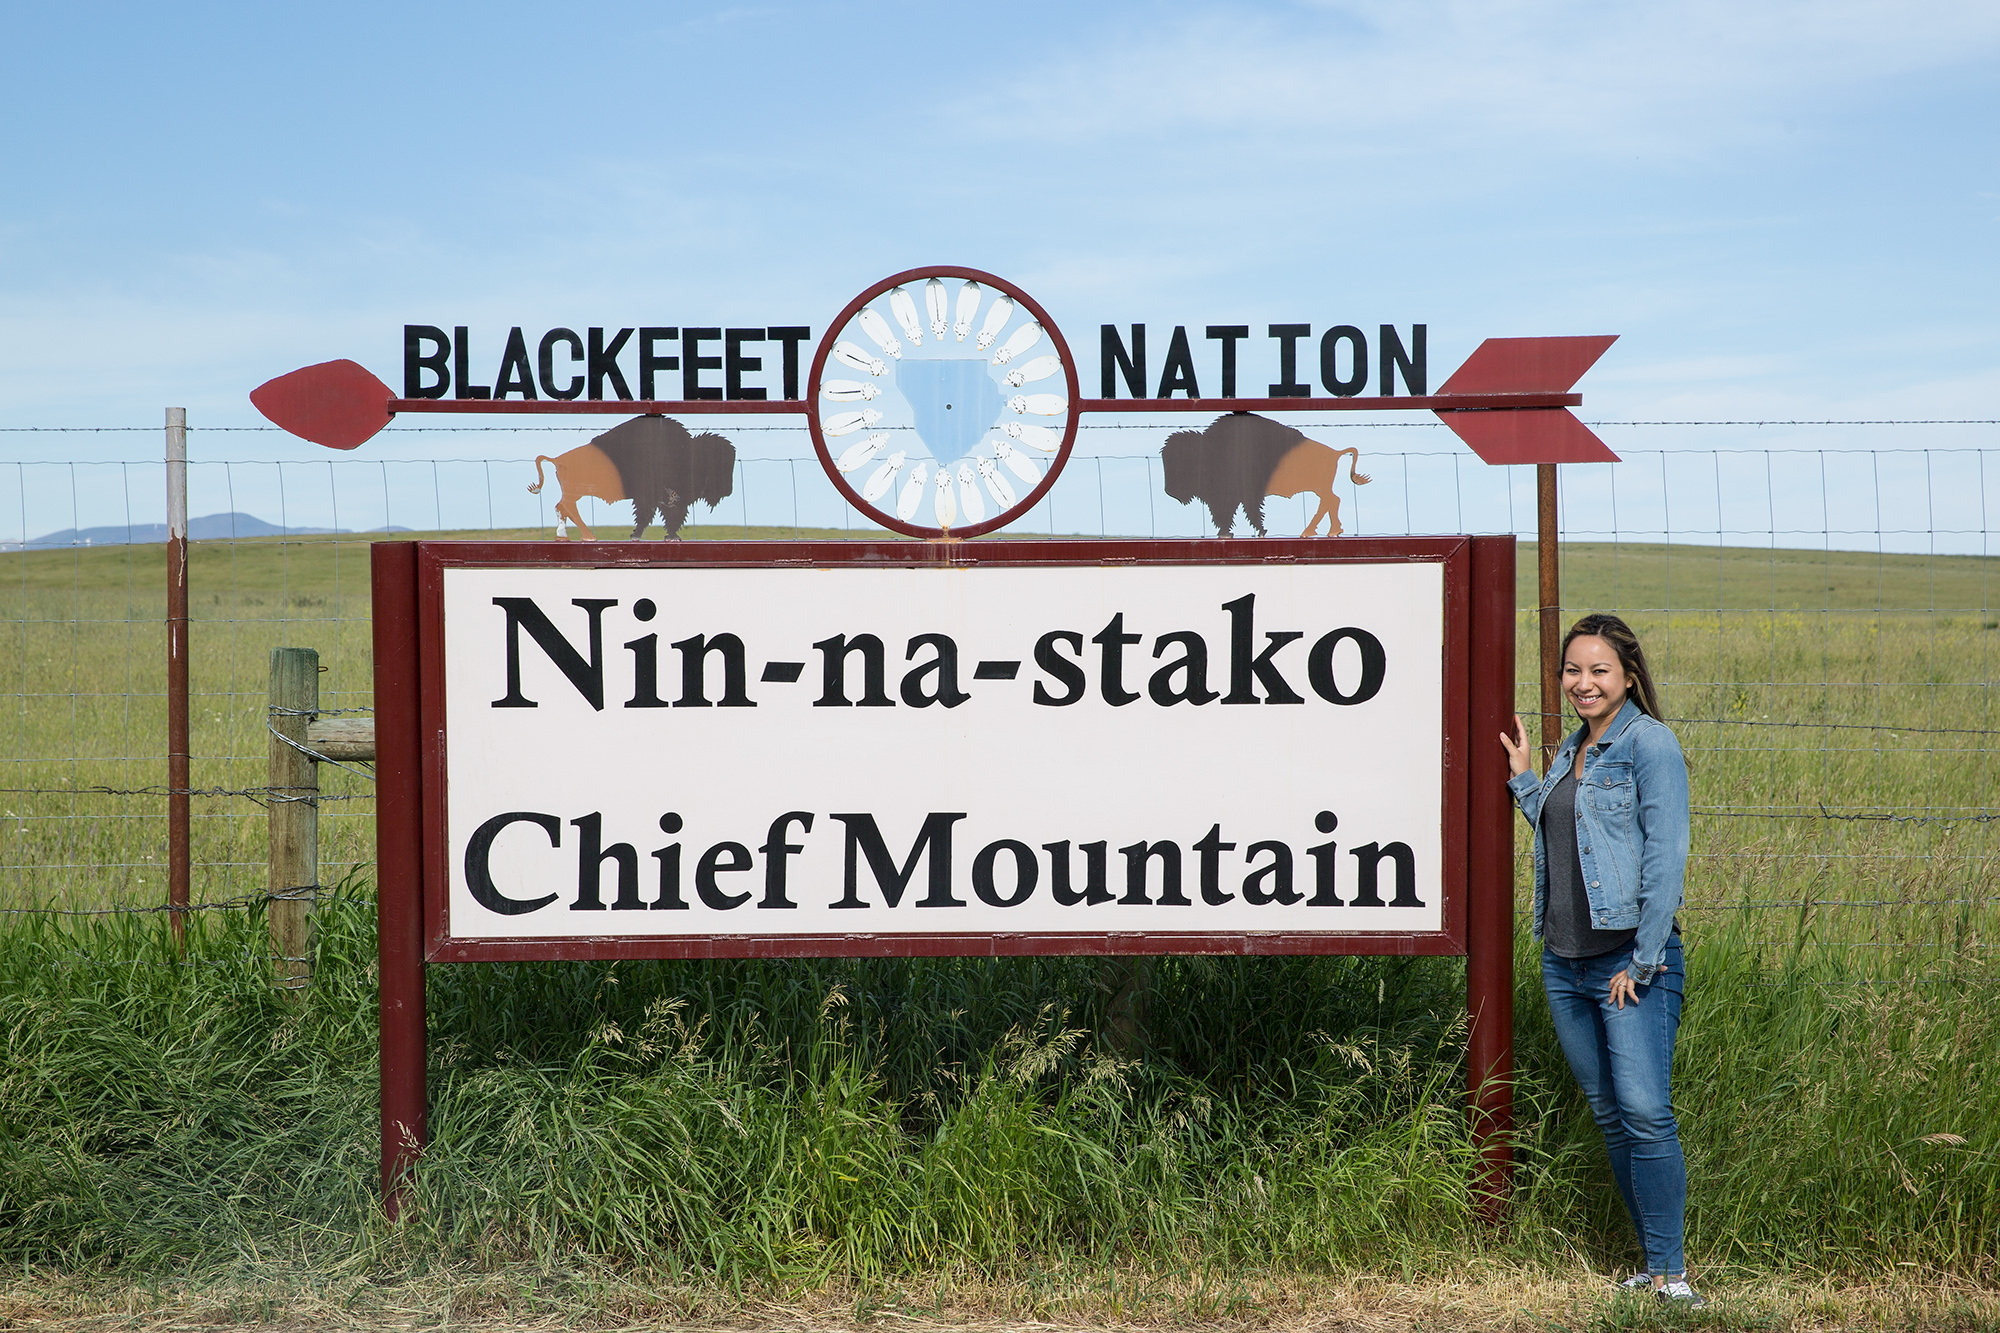 Entering the Blackfeet Nation from the North after returning from Canada.